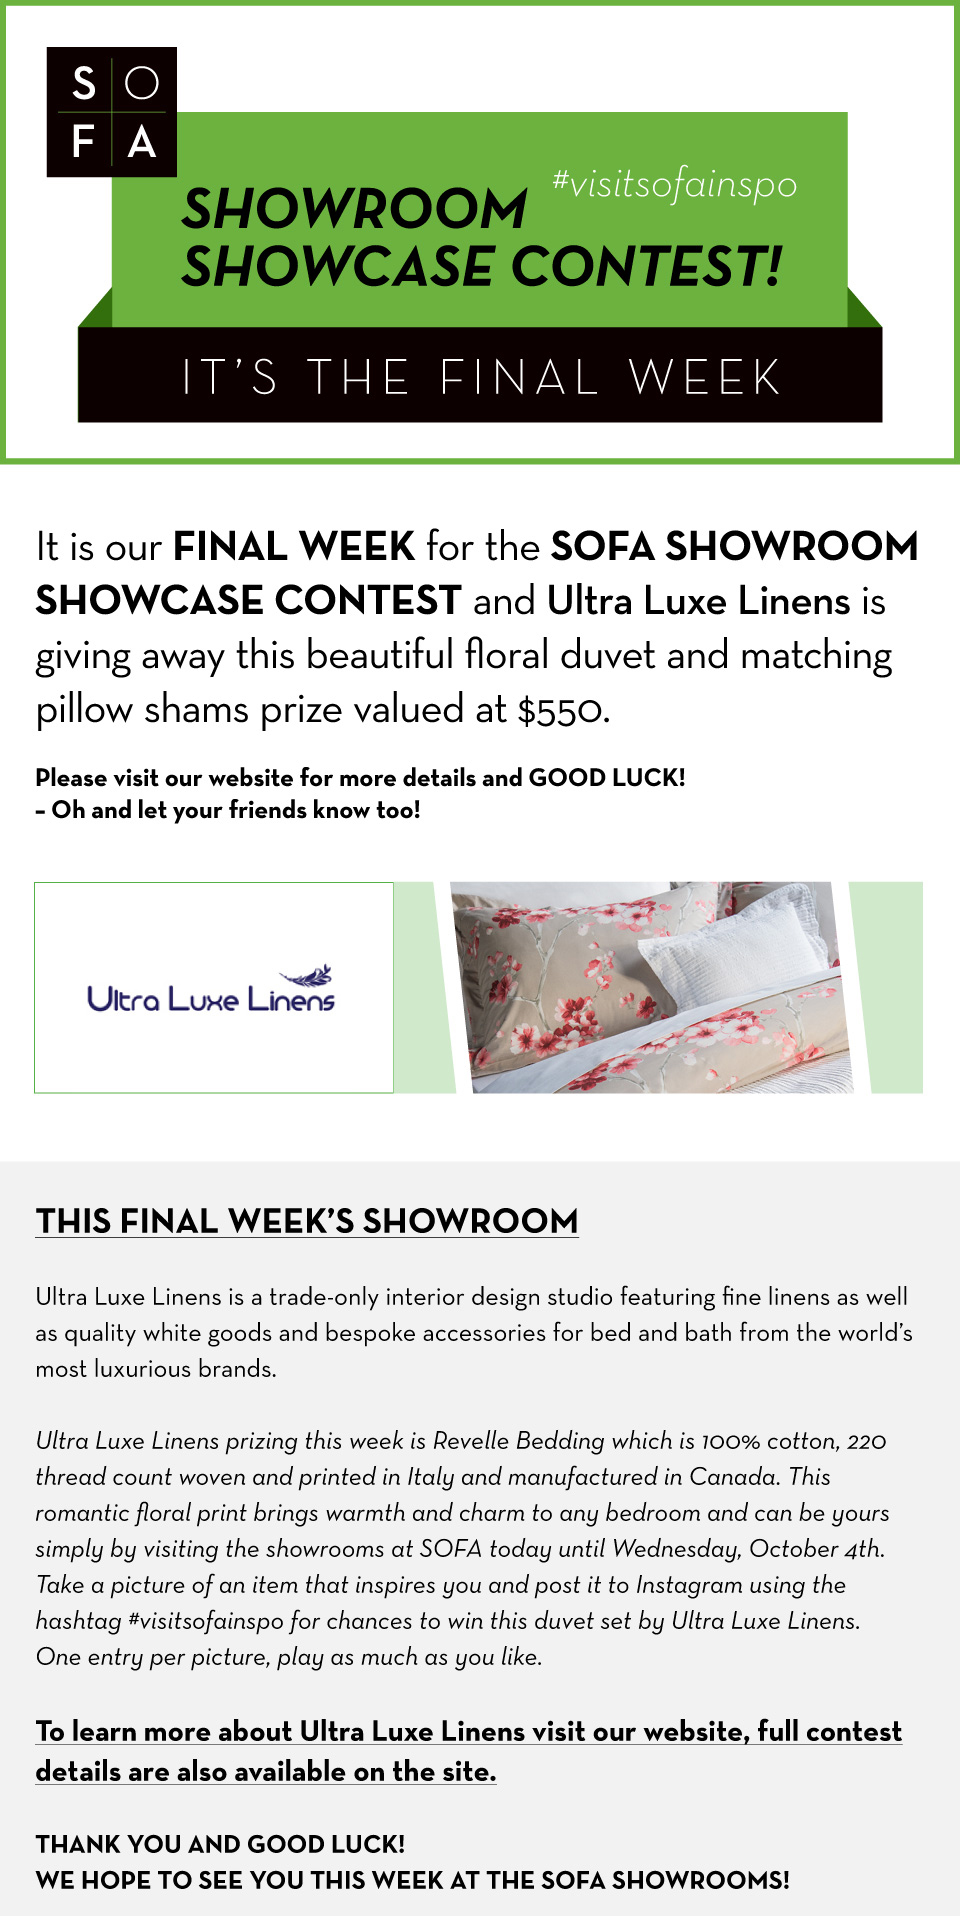 SO17-032-SOFA-ShowroomShowcase-Contest-Eblast-Prize-6-1.jpg